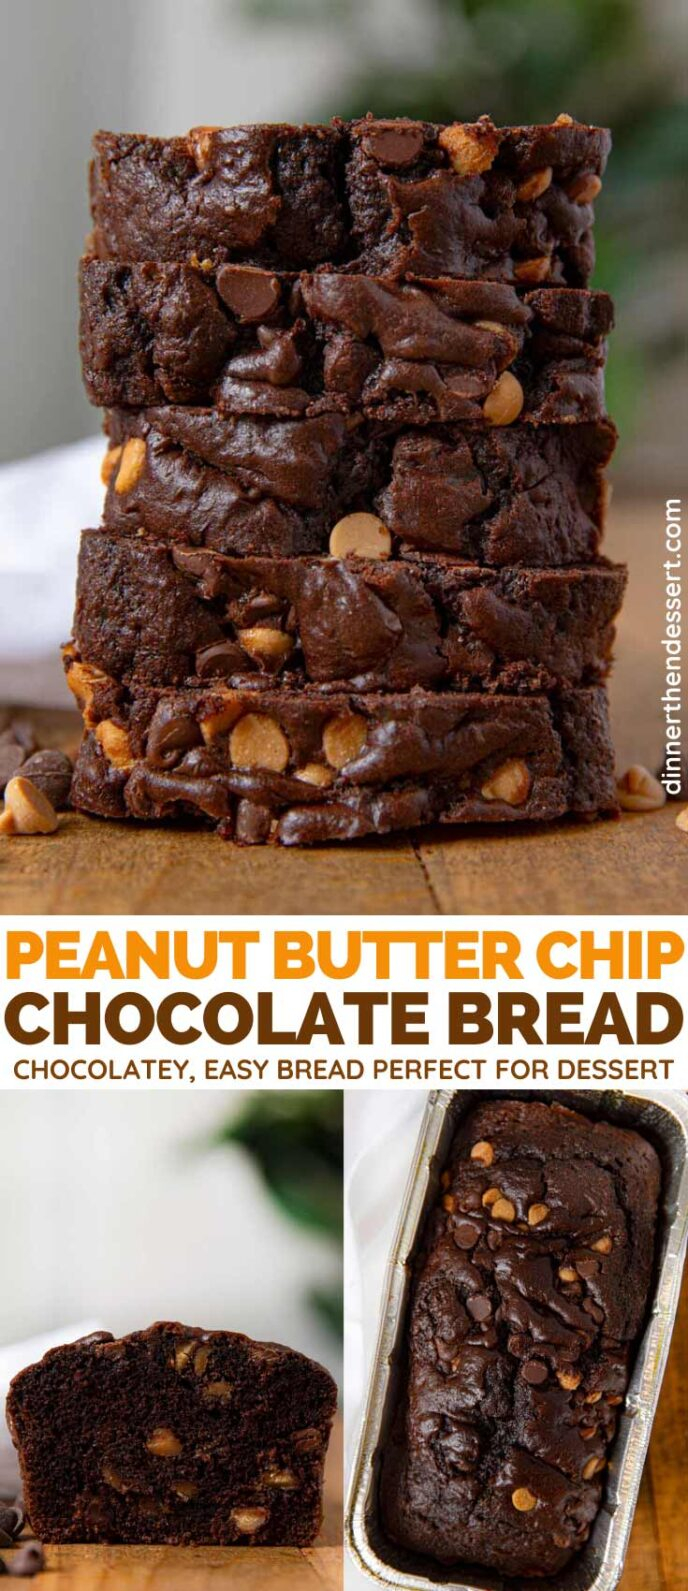 Peanut Butter Chip Chocolate Bread collage